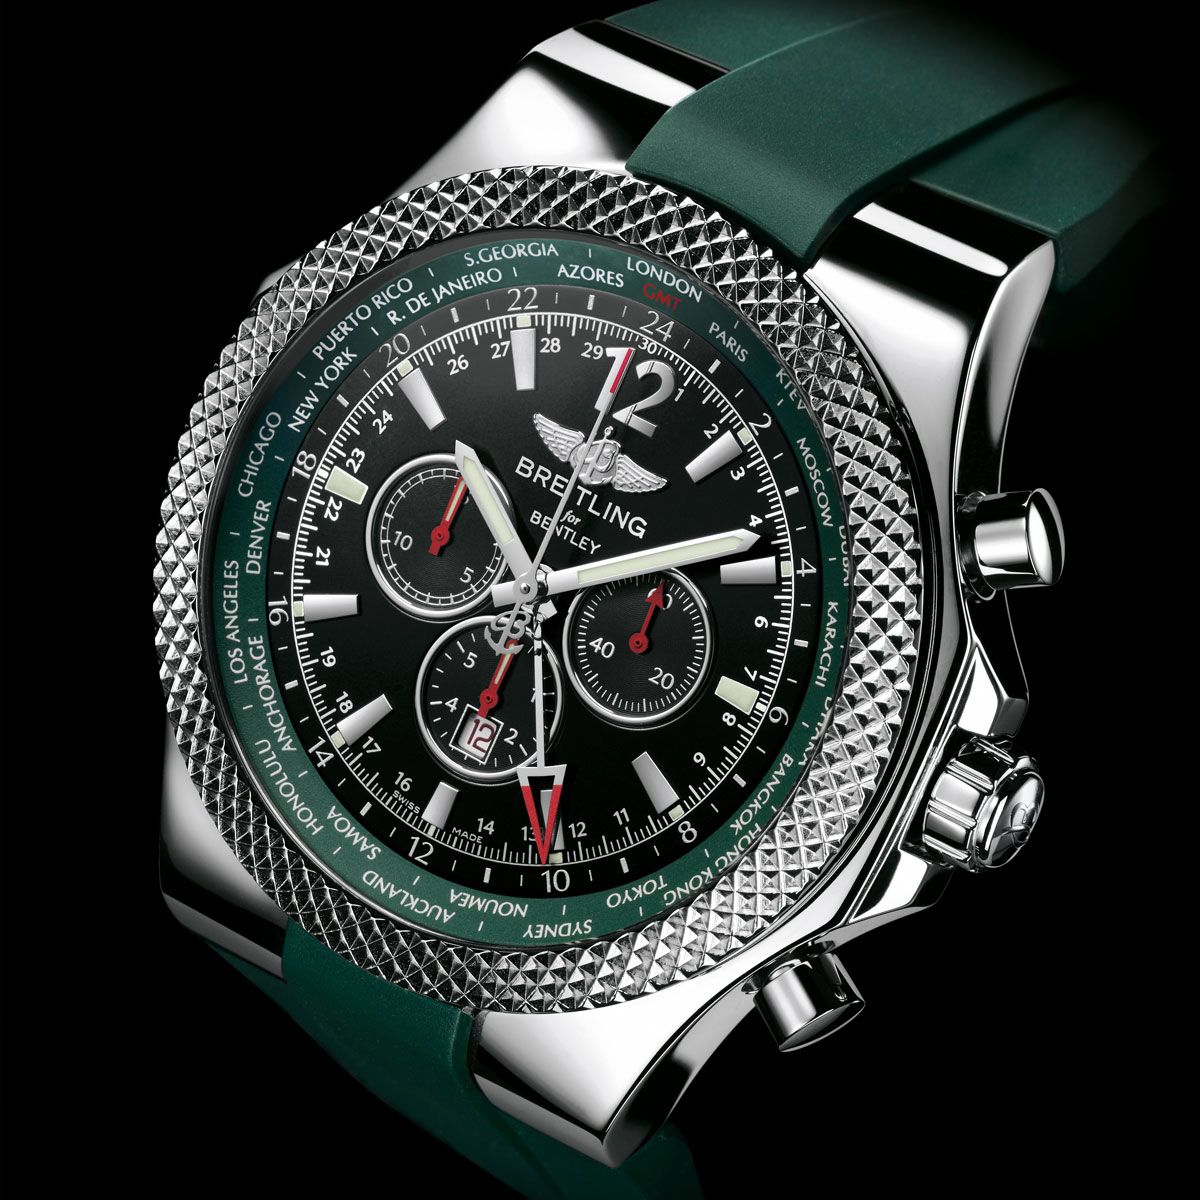 The Watch Quote Photo Breitling Bentley Gmt Chronograph Breitling Bentley Breitling Watches Breitling